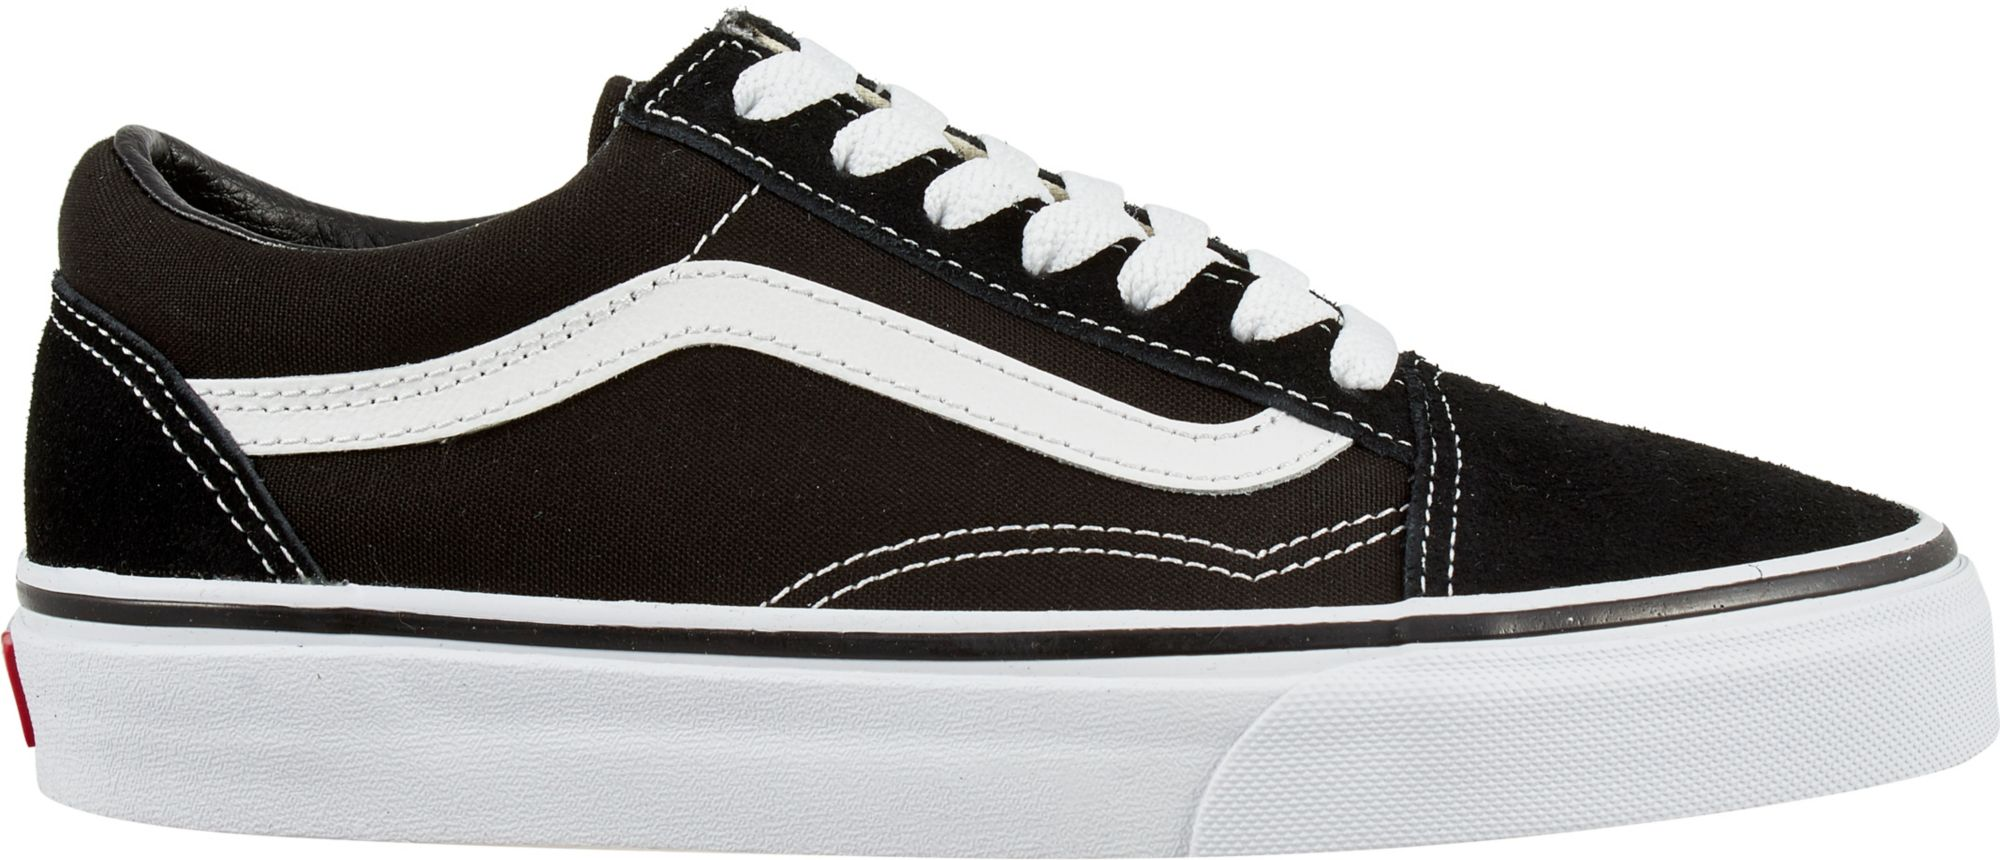 old skool mens black and white vans